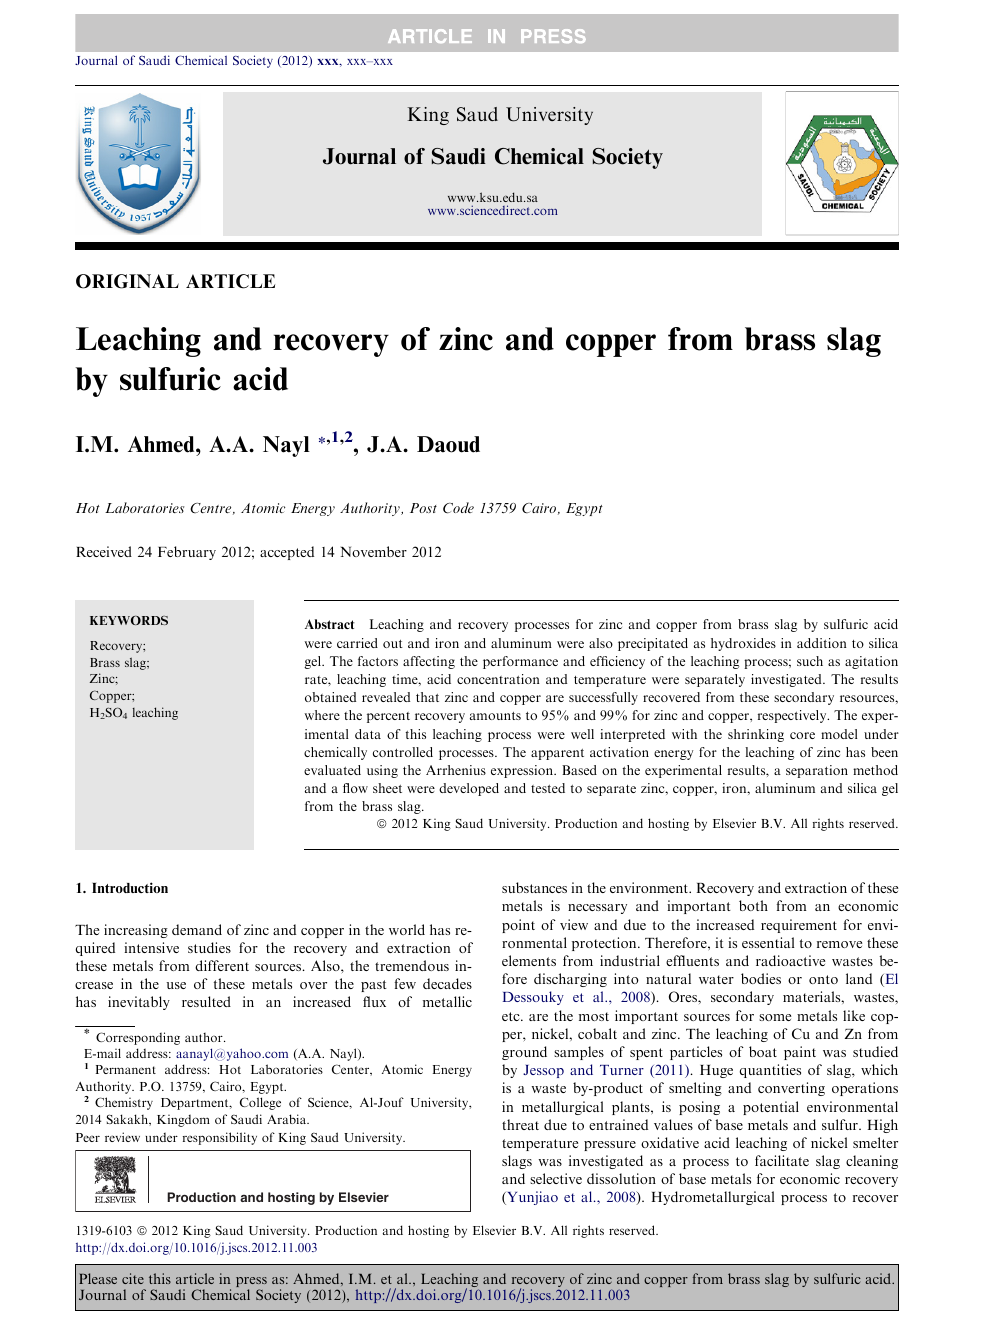 Leaching and recovery of zinc and copper from brass slag by